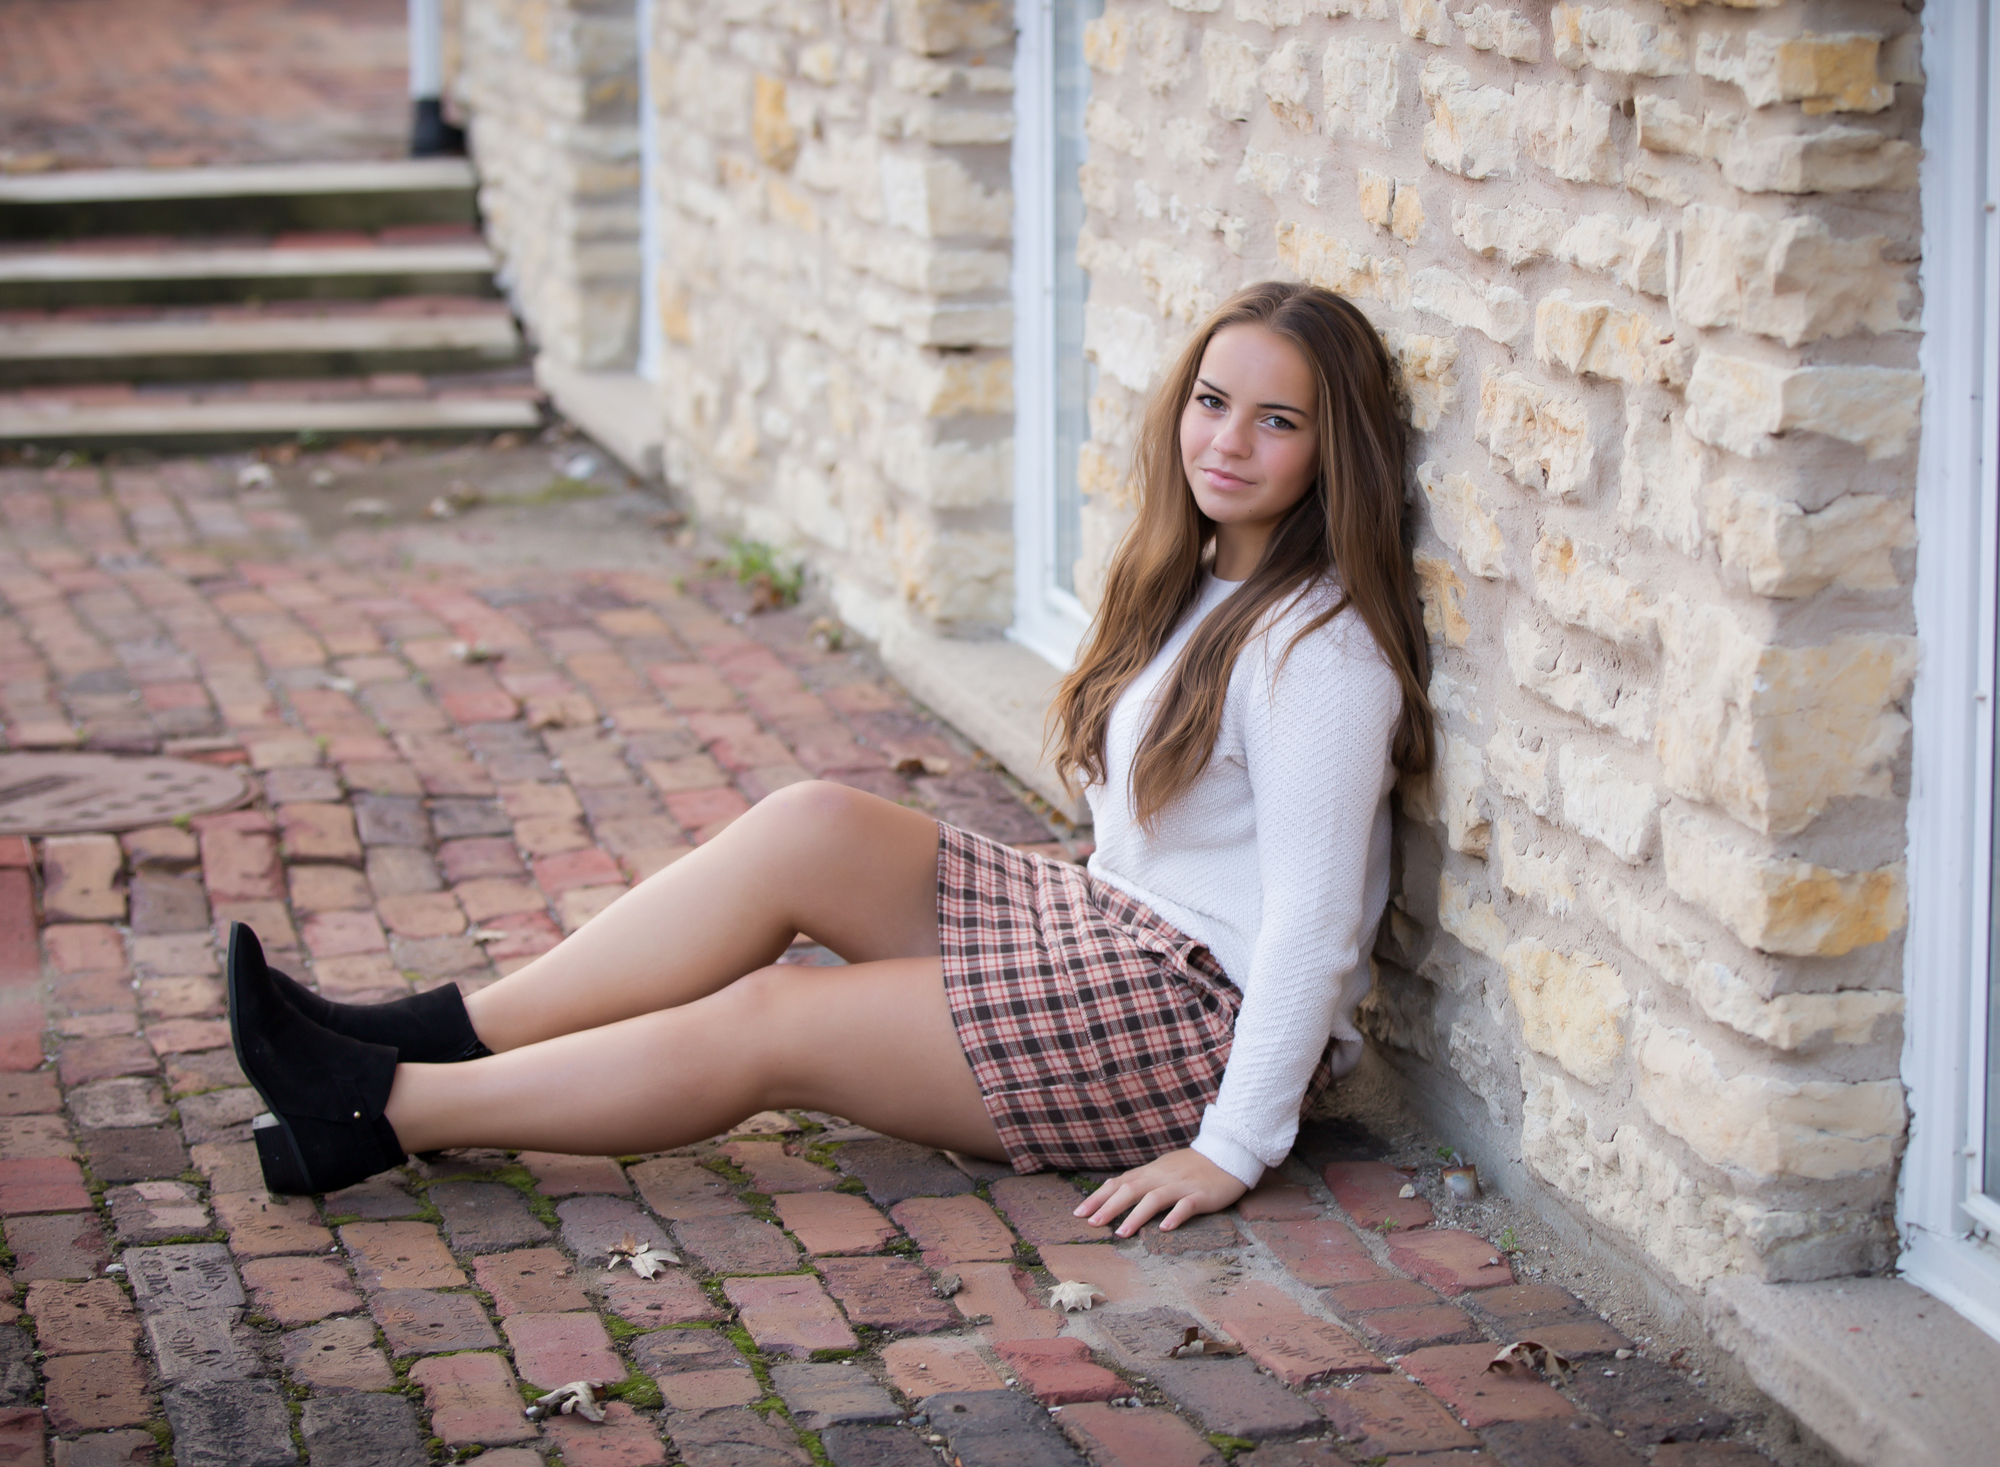 blonde-girl-in-plaid-skirt-sitting-and-leaning-against-wall